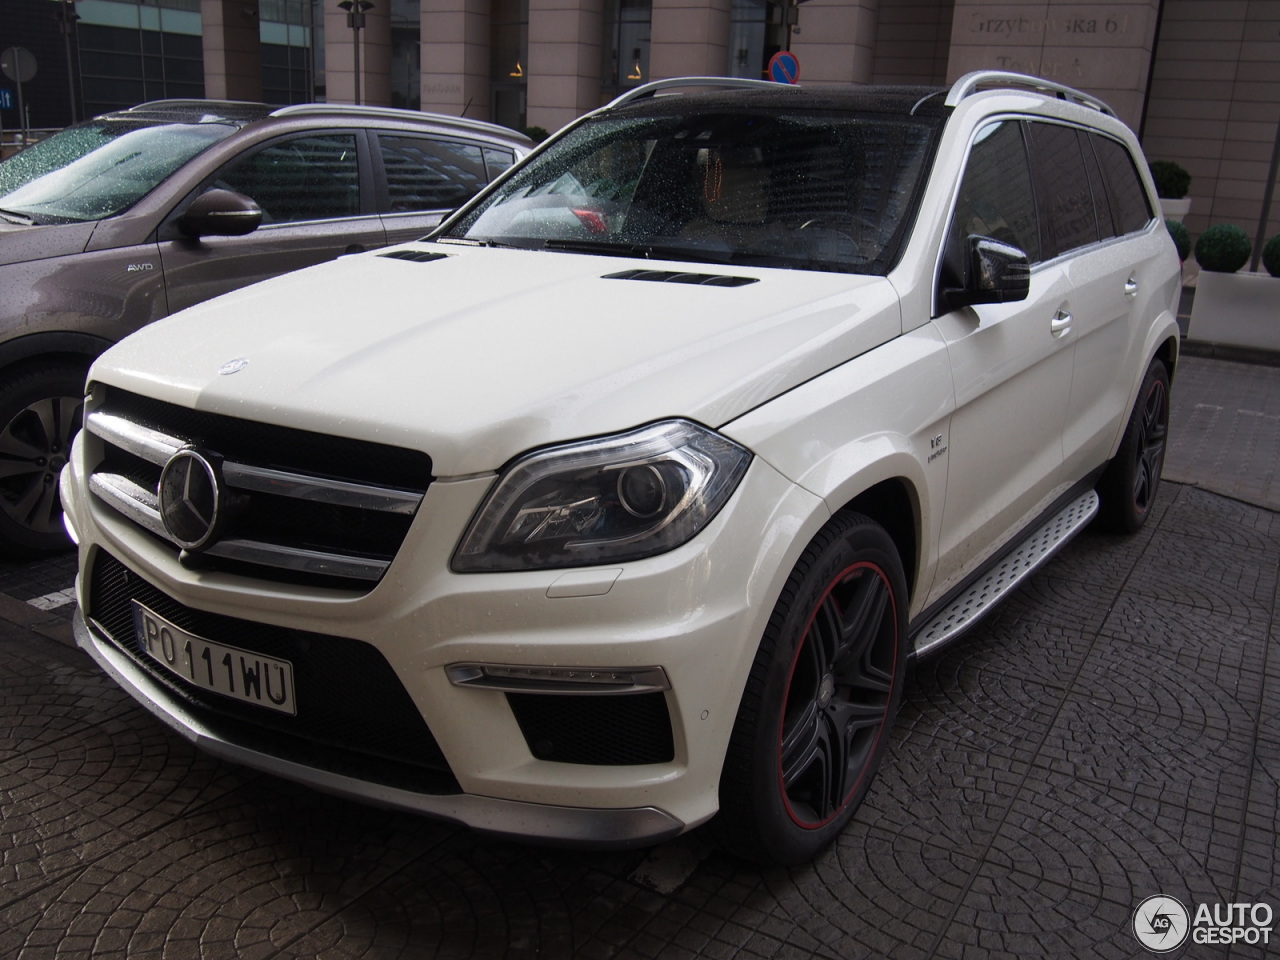 Mercedes benz gl 63 amg x166 9 2017 autogespot for 2017 mercedes benz gl450